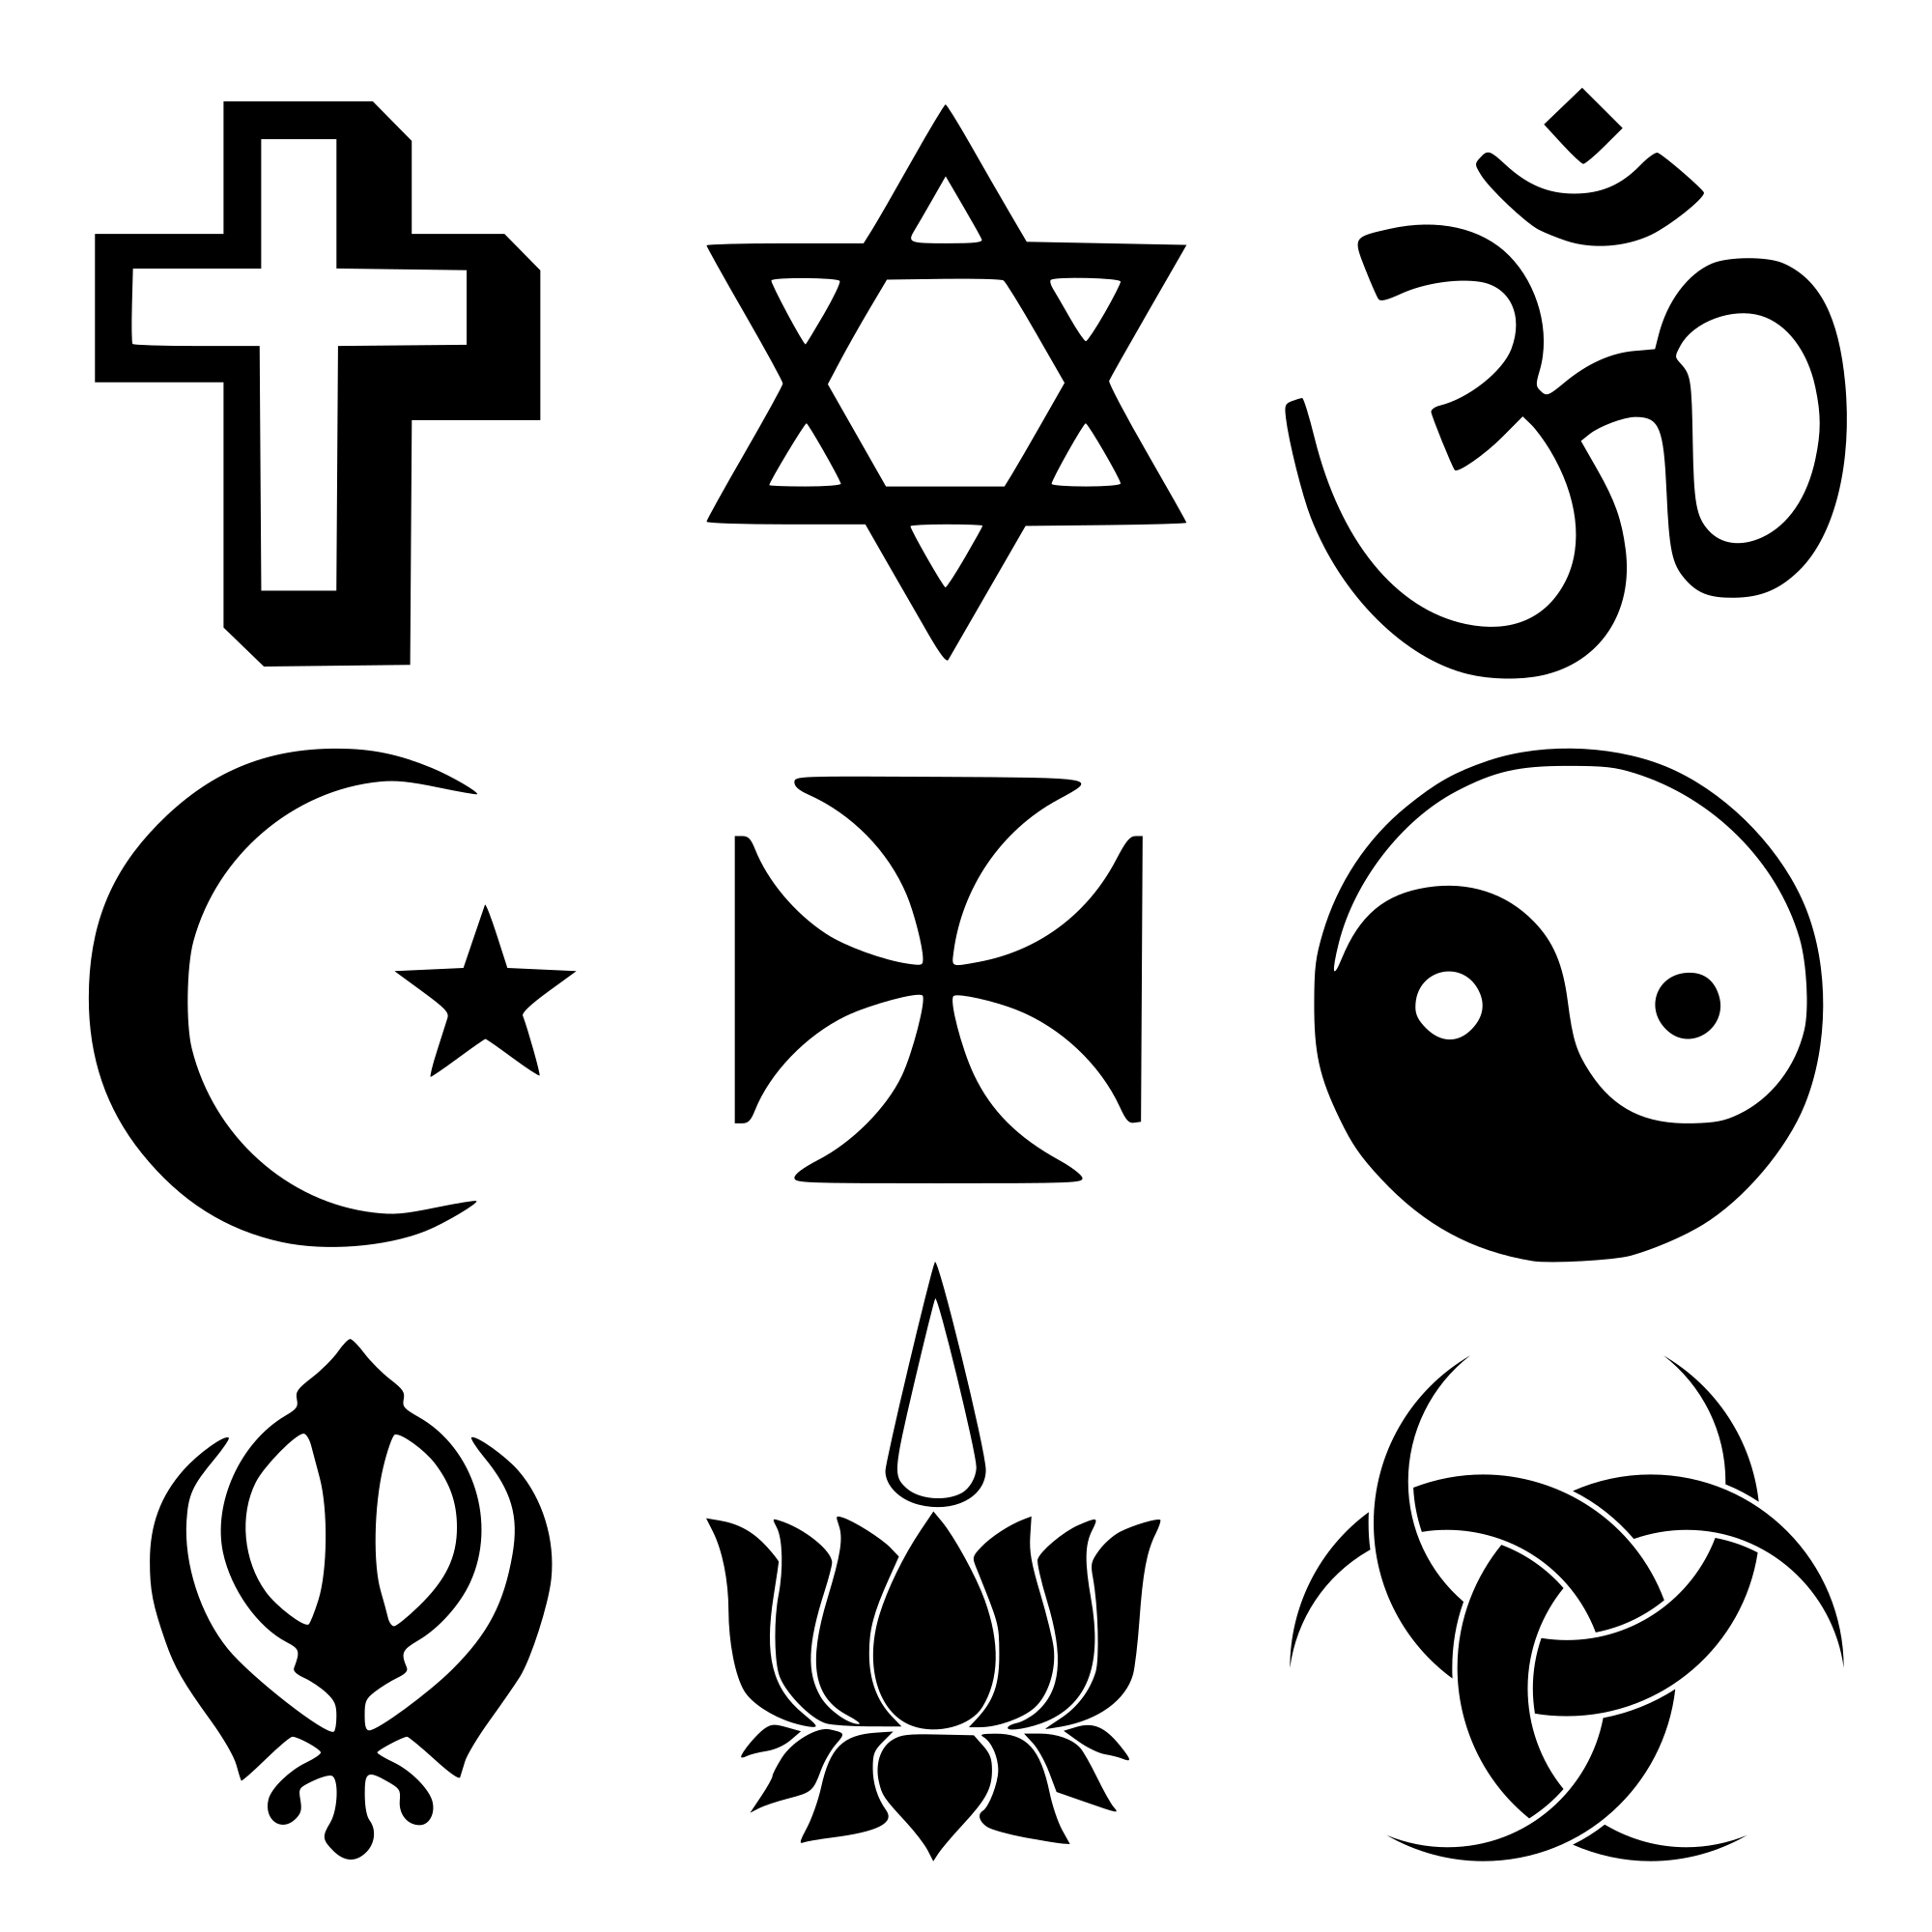 Svg symbols png. File religious wikimedia commons